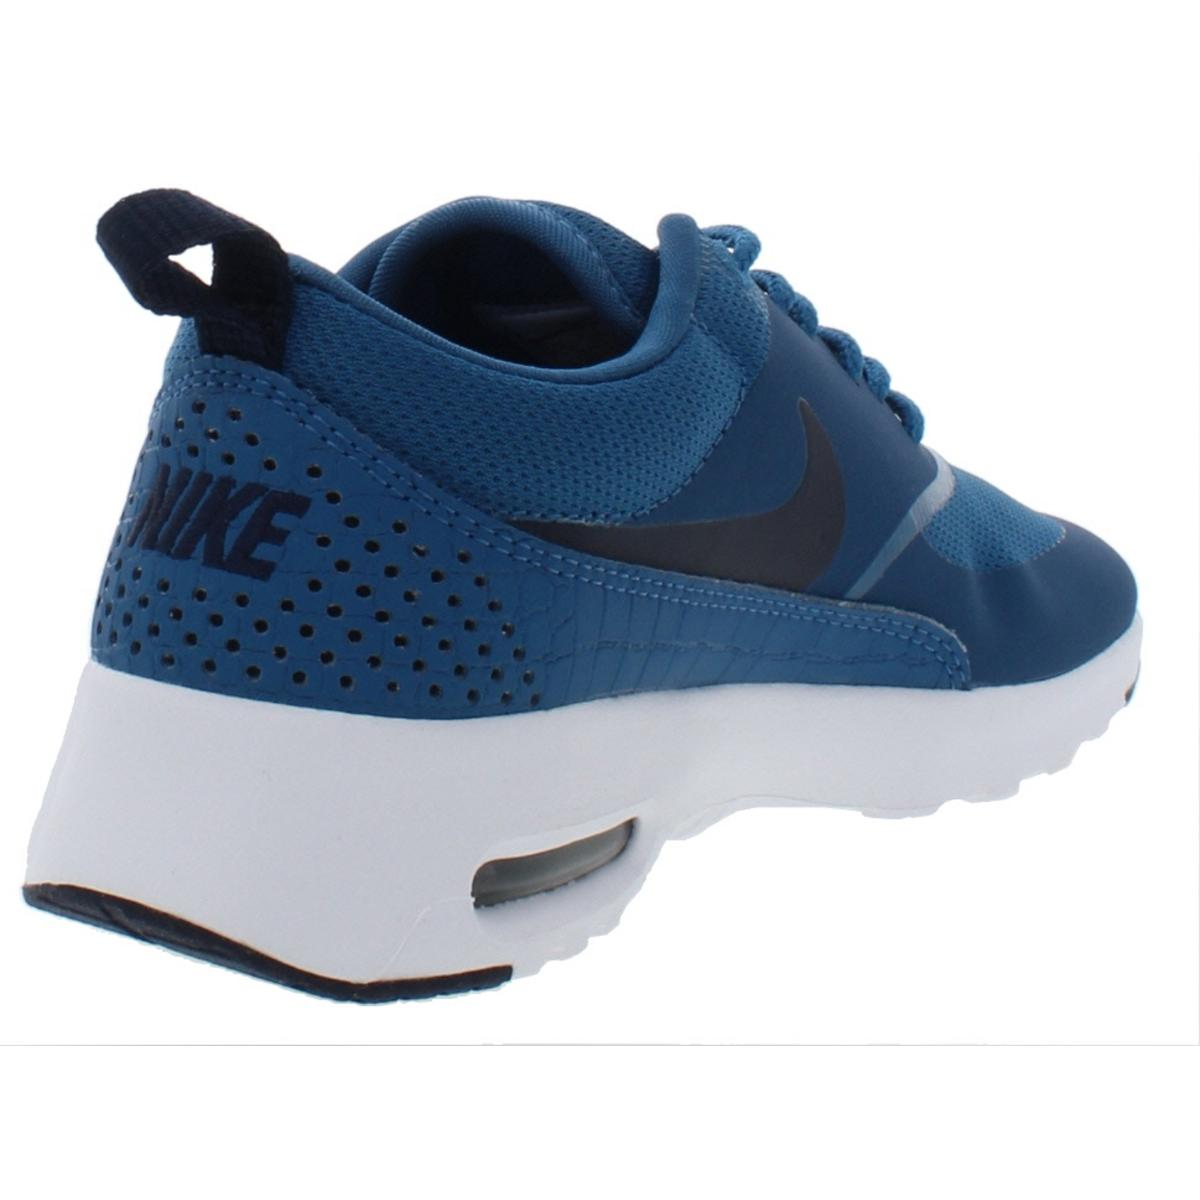 be526f7db6 Nike Womens Air Max Thea Running Walking Athletic Shoes Sneakers ...